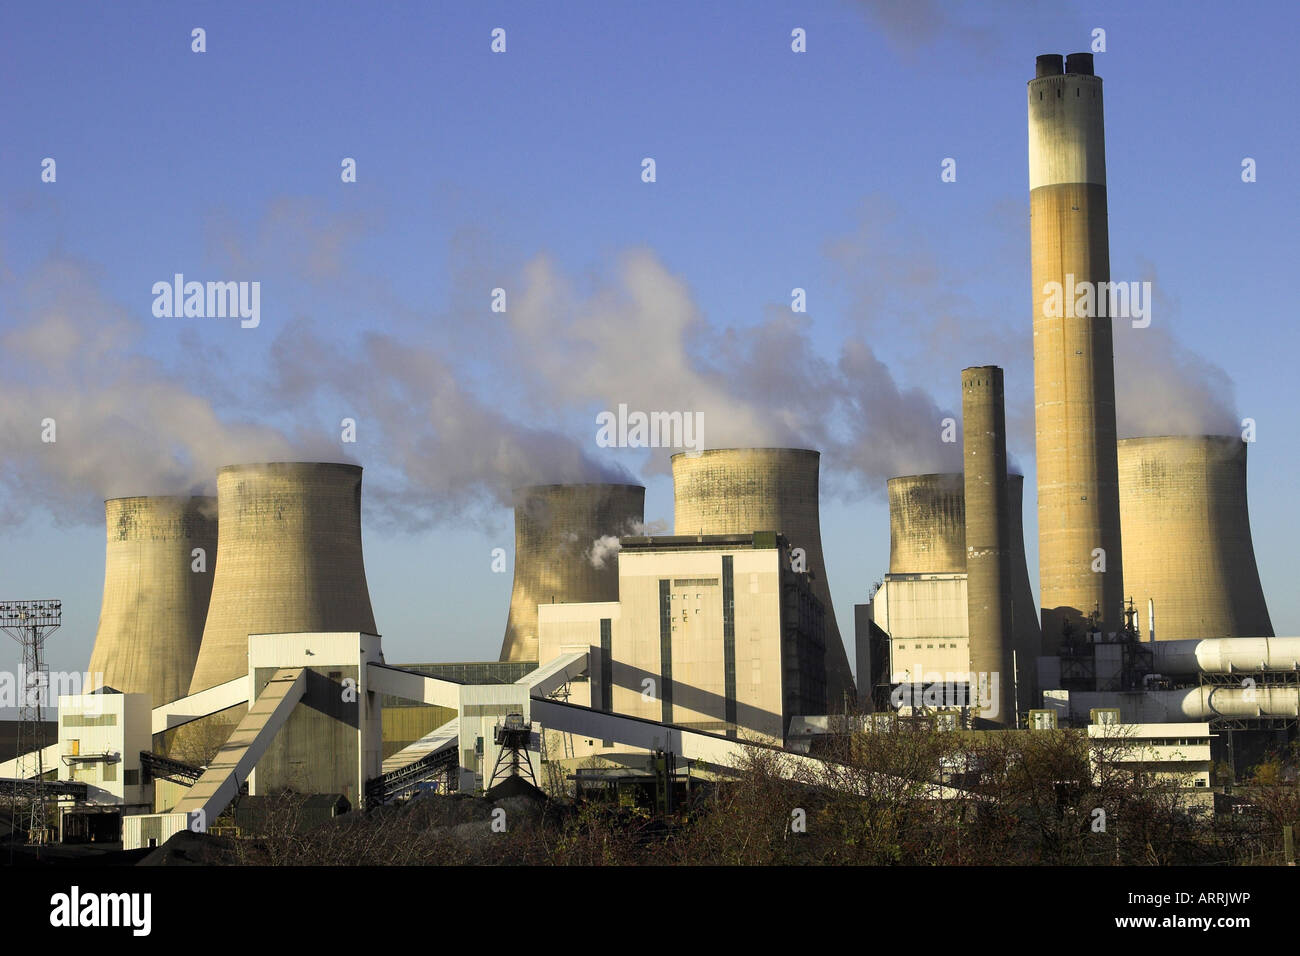 A coal burning power station at Ratcliffe On Soar, Nottinghamshire. - Stock Image